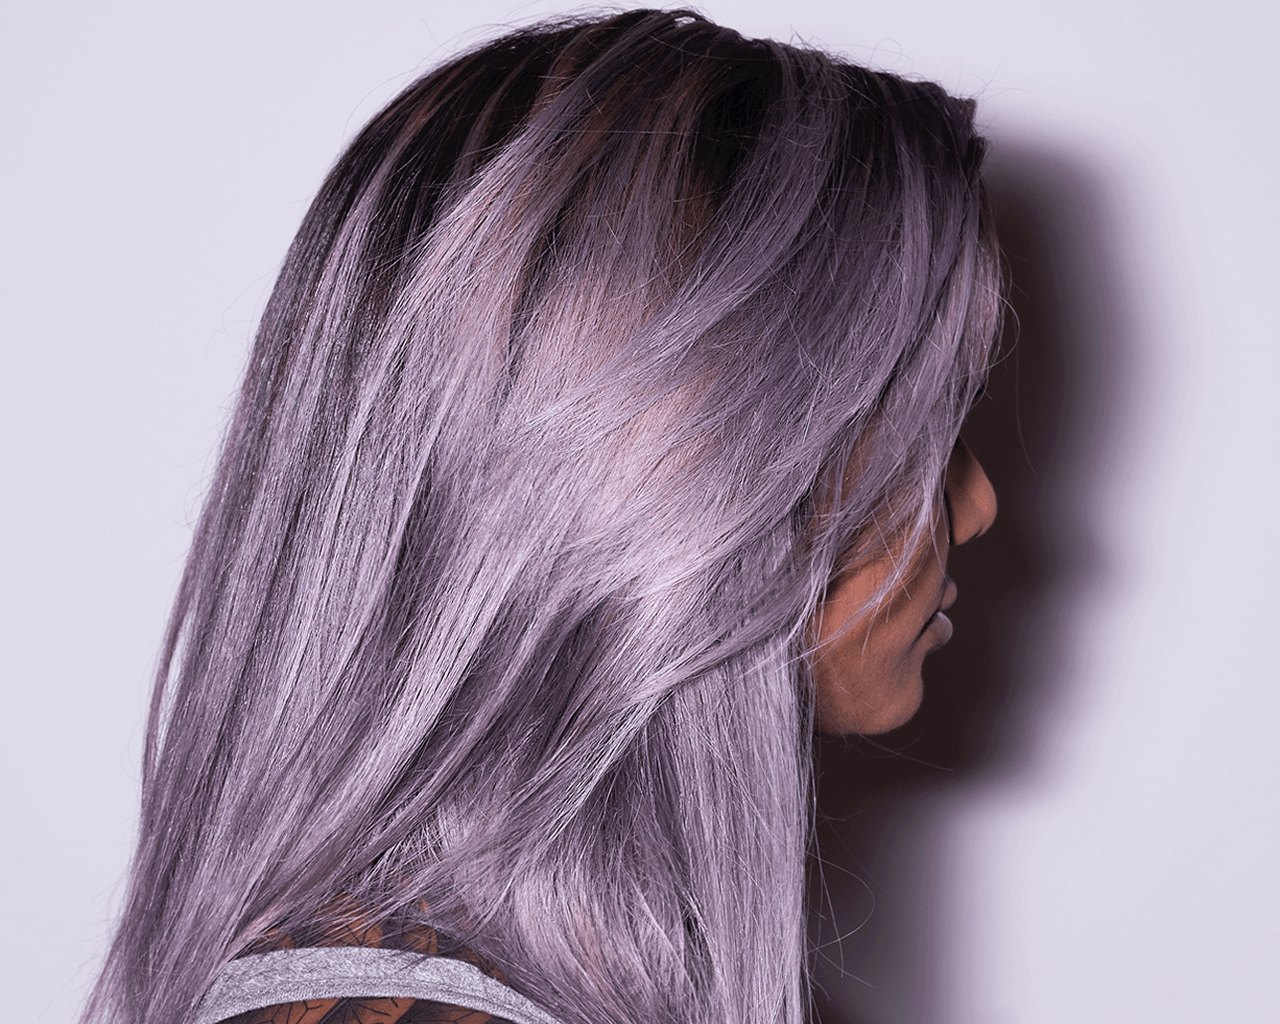 Gallery: Image of a woman with layered lilac hair.